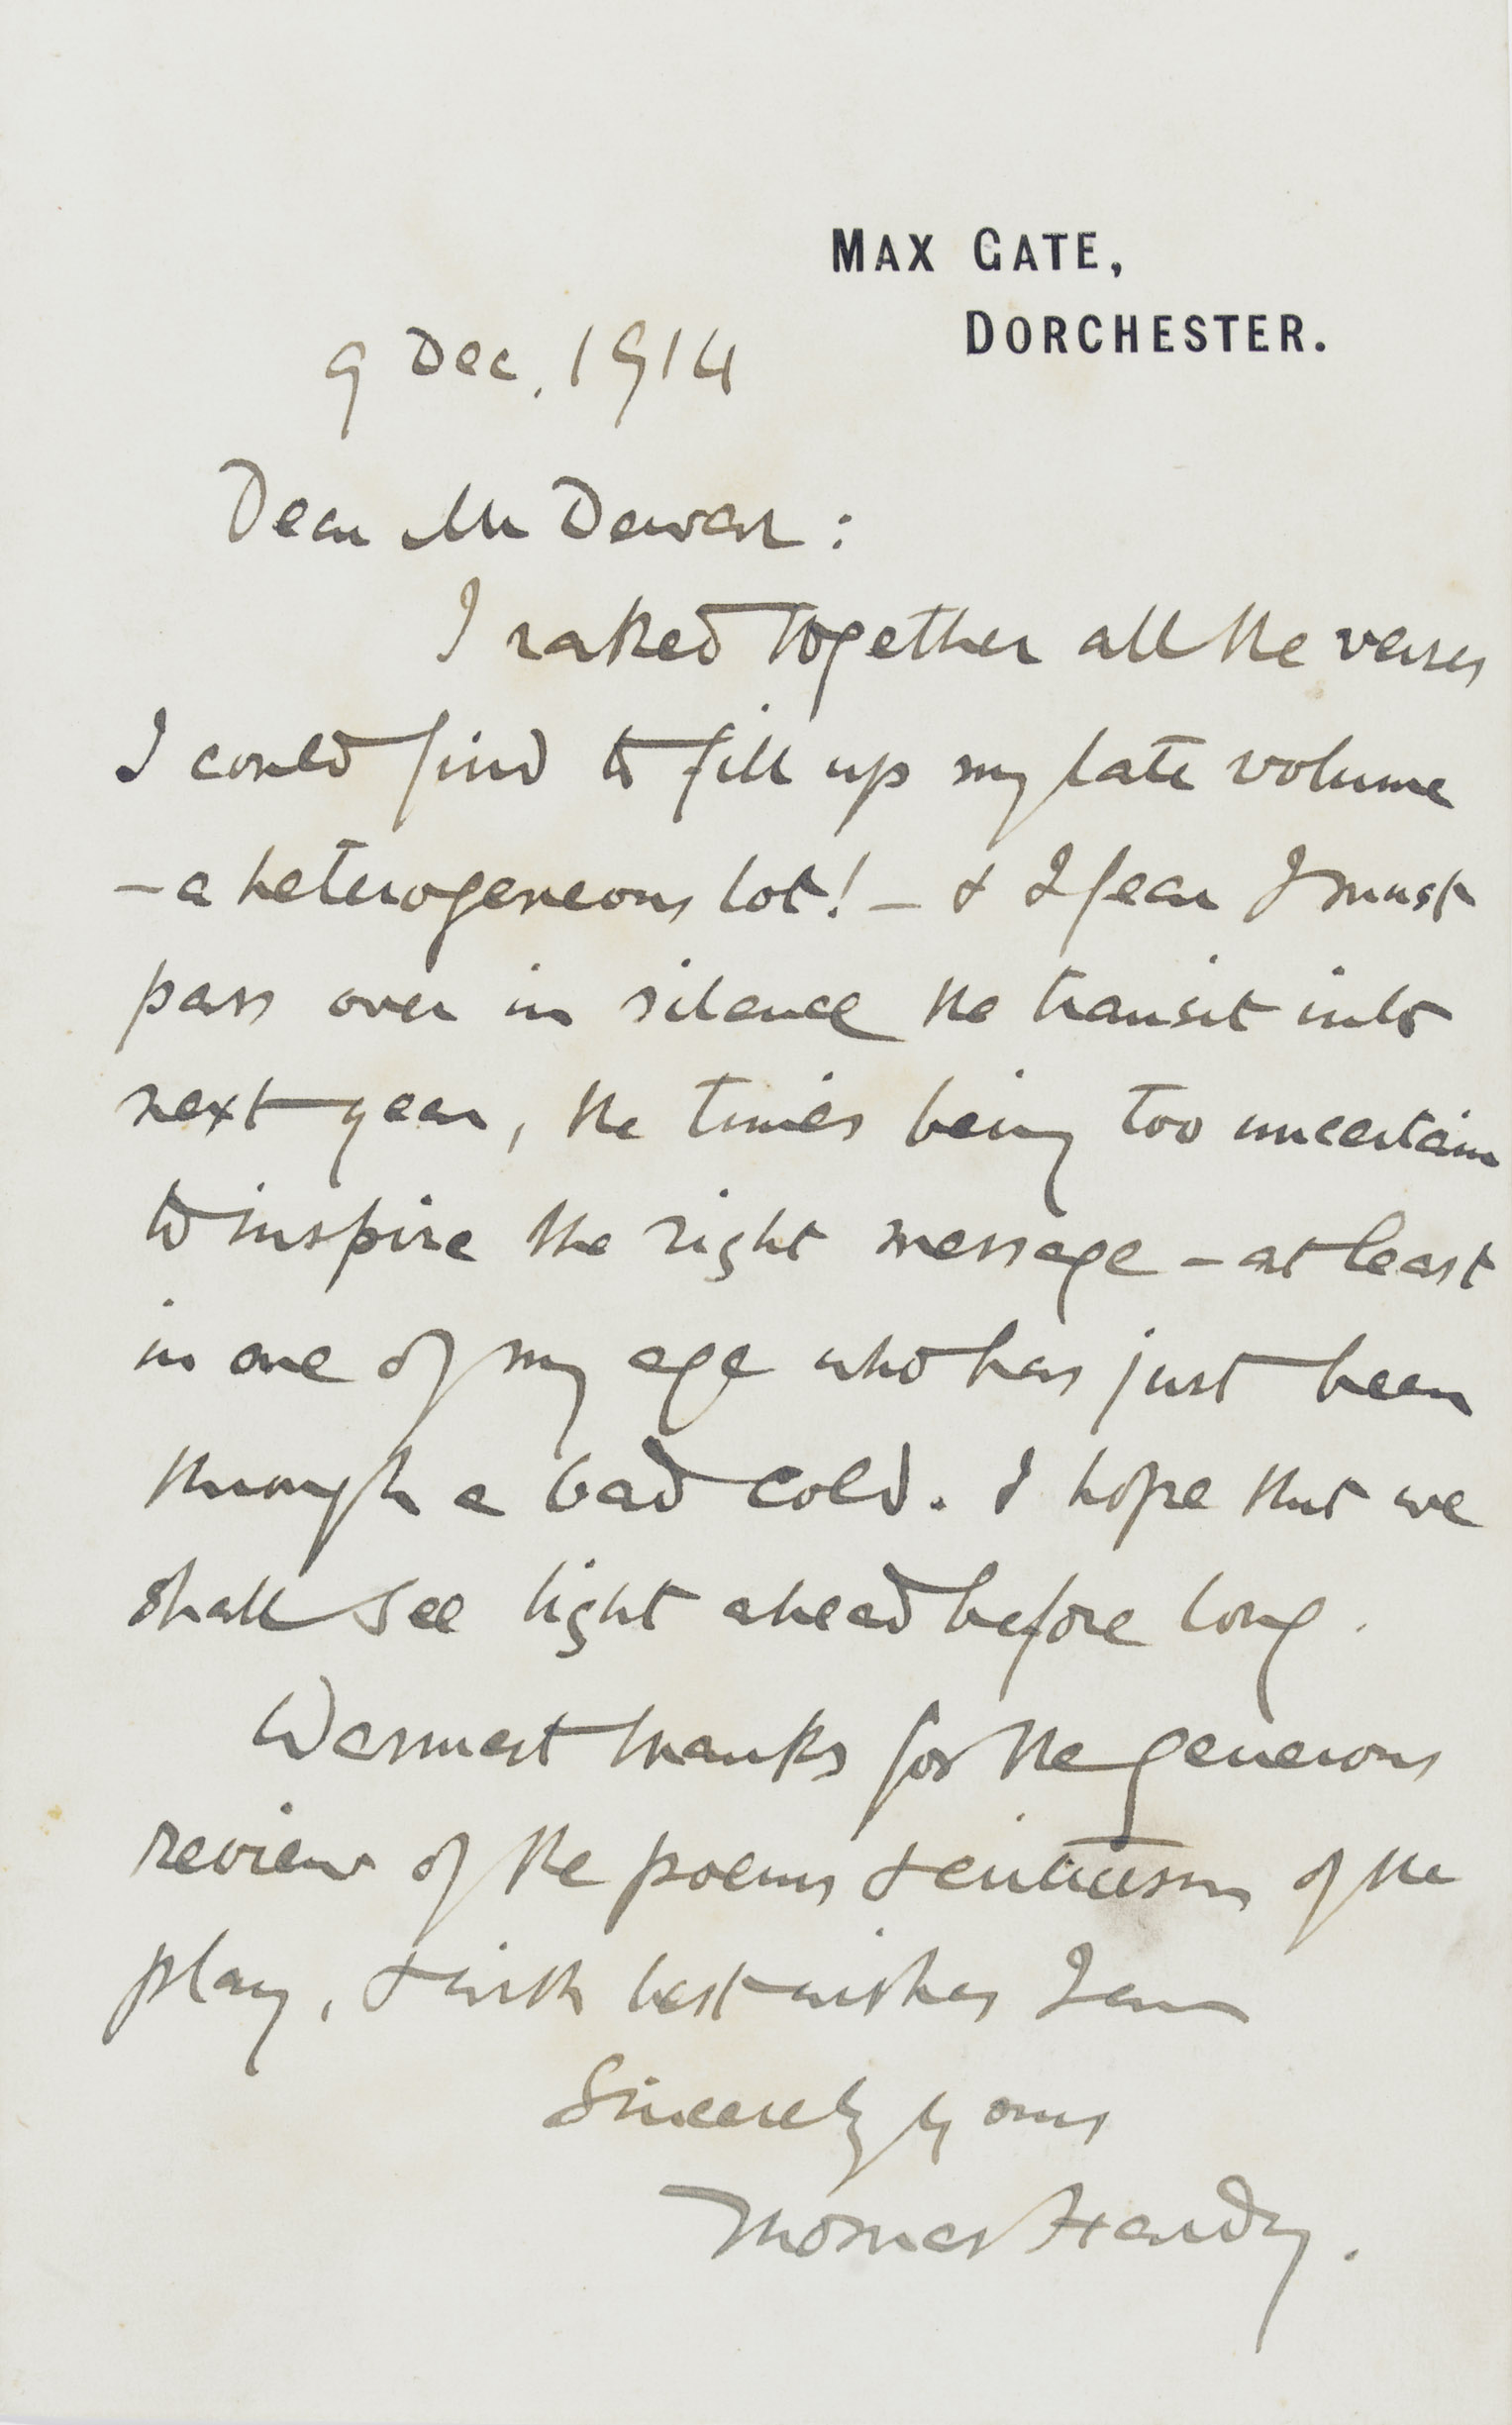 HARDY, Thomas (1840-1928). Autograph letter signed ('Thomas Hardy') to 'Mr Dewar', Max Gate, 9 December 1914, referring dismissively to his great collection Satires of Circumstance (which included the 'Poems of 1912-13'), 'I raked together all the verse I could find to fill up my late volume -- a heterogeneous lot! -- & I fear I must pass over in silence the transit into next year, the times being too uncertain to inspire the right message', concluding with a reference to the ongoing war, 'I hope that we shall see light ahead before long', and thanks for some favourable reviews, one page, 8vo, bifolium (minor staining, traces of old paste to verso of integral blank).